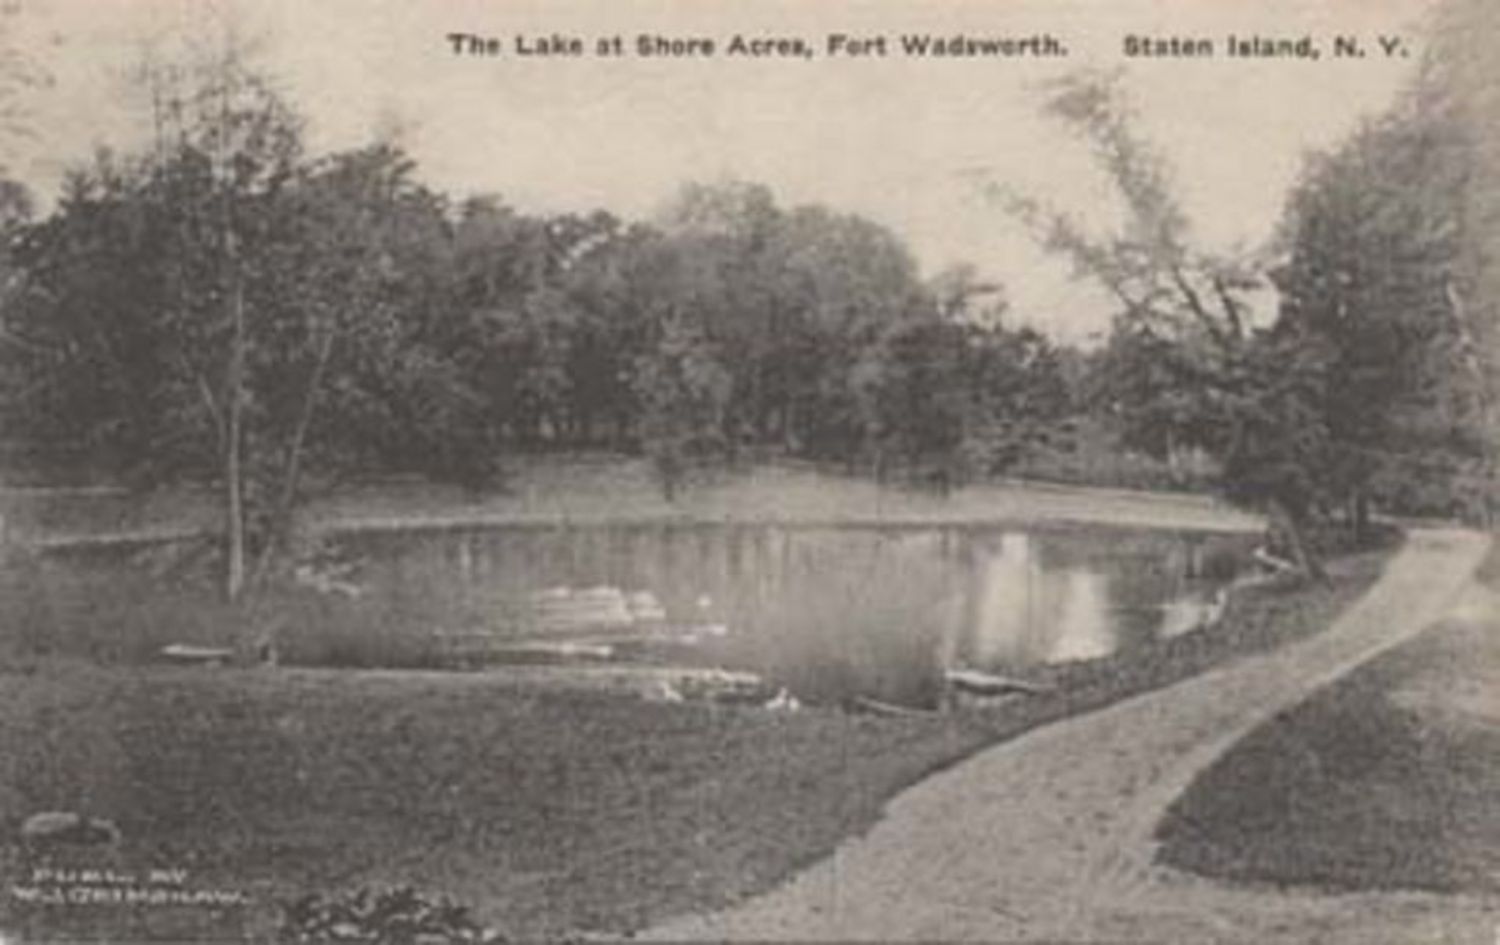 Postcard of Fort Wadsworth.